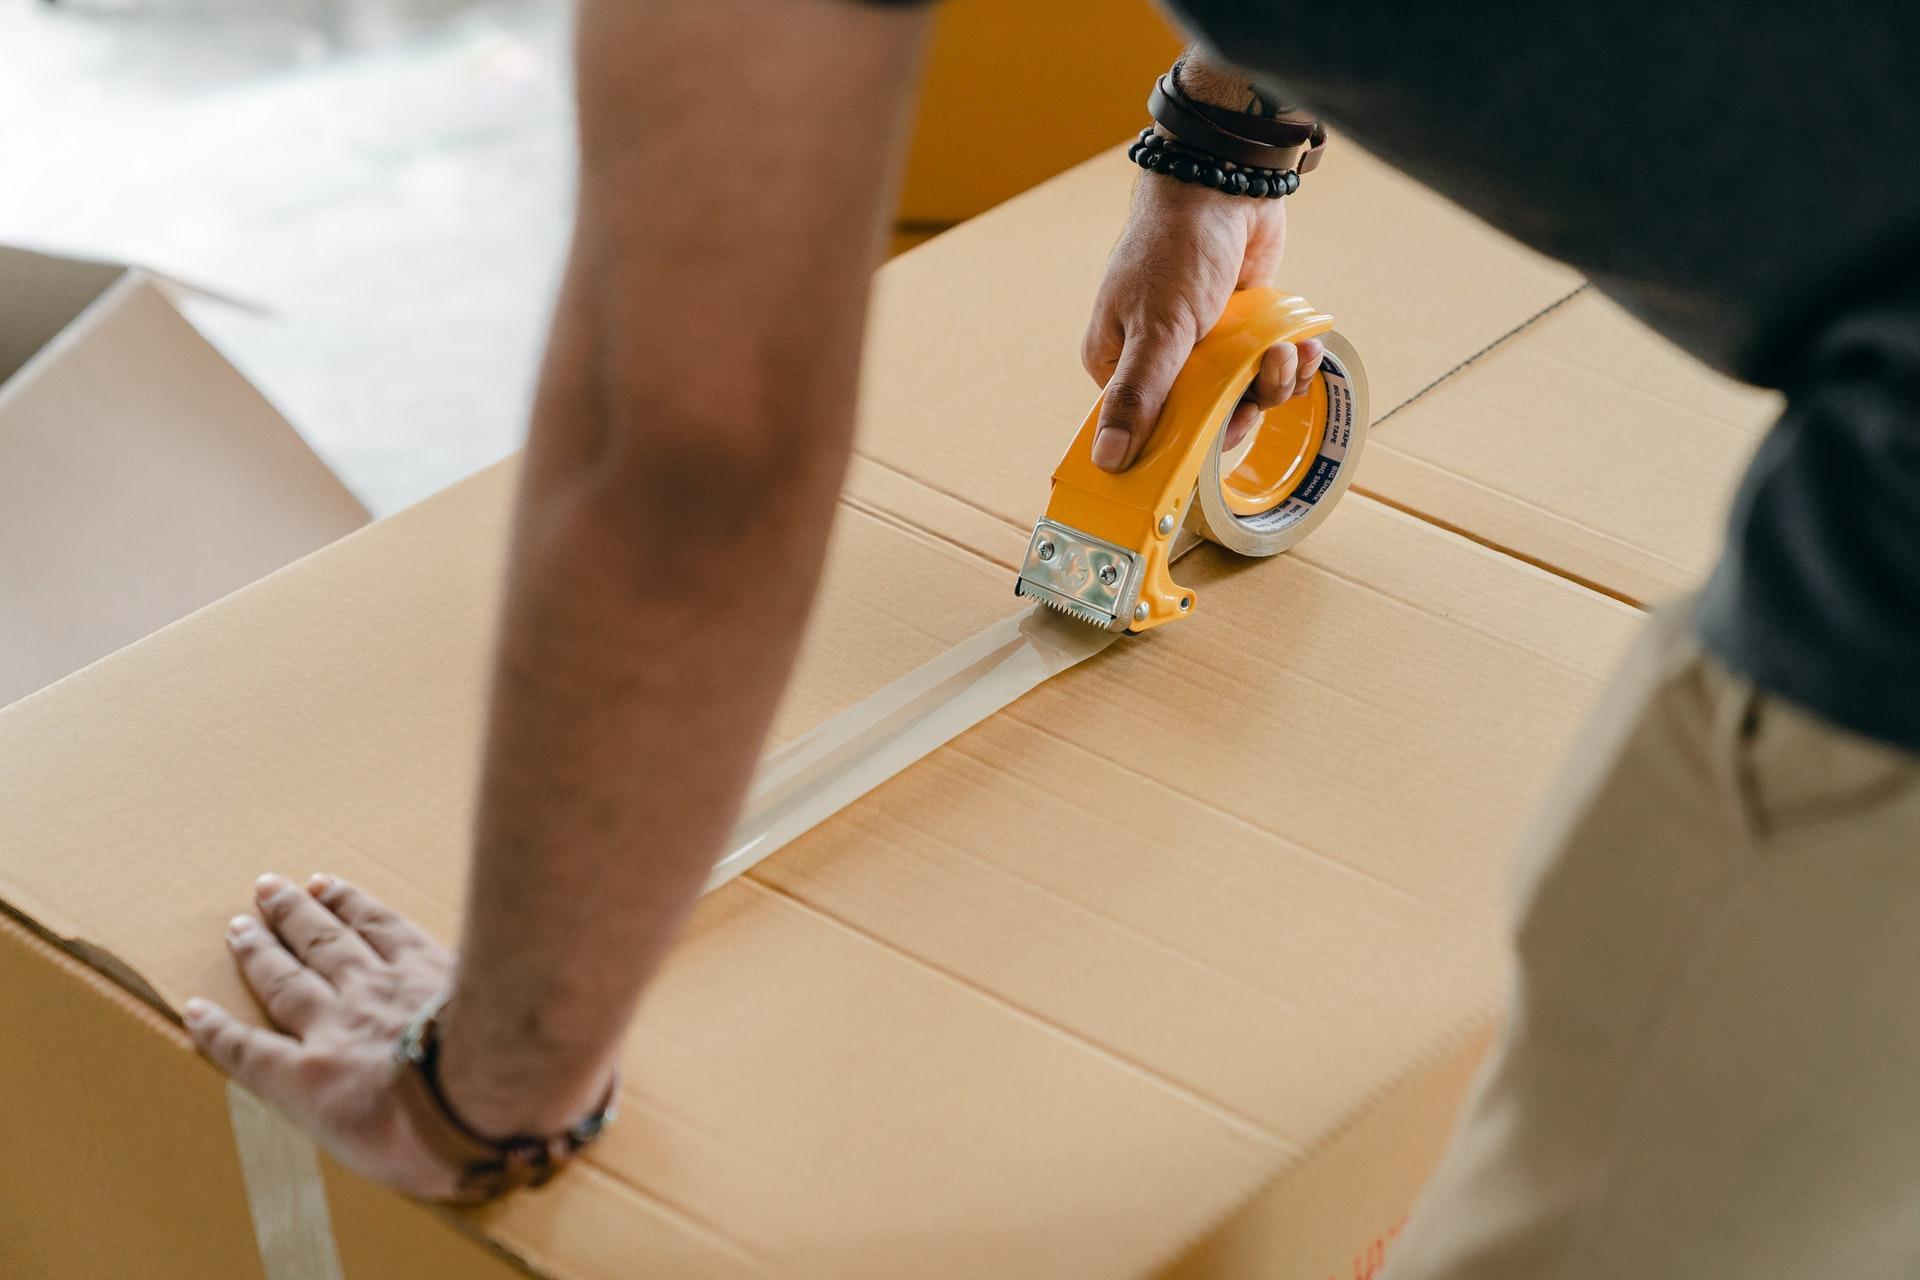 A man taping up an ecommerce order to be shipped to customers.